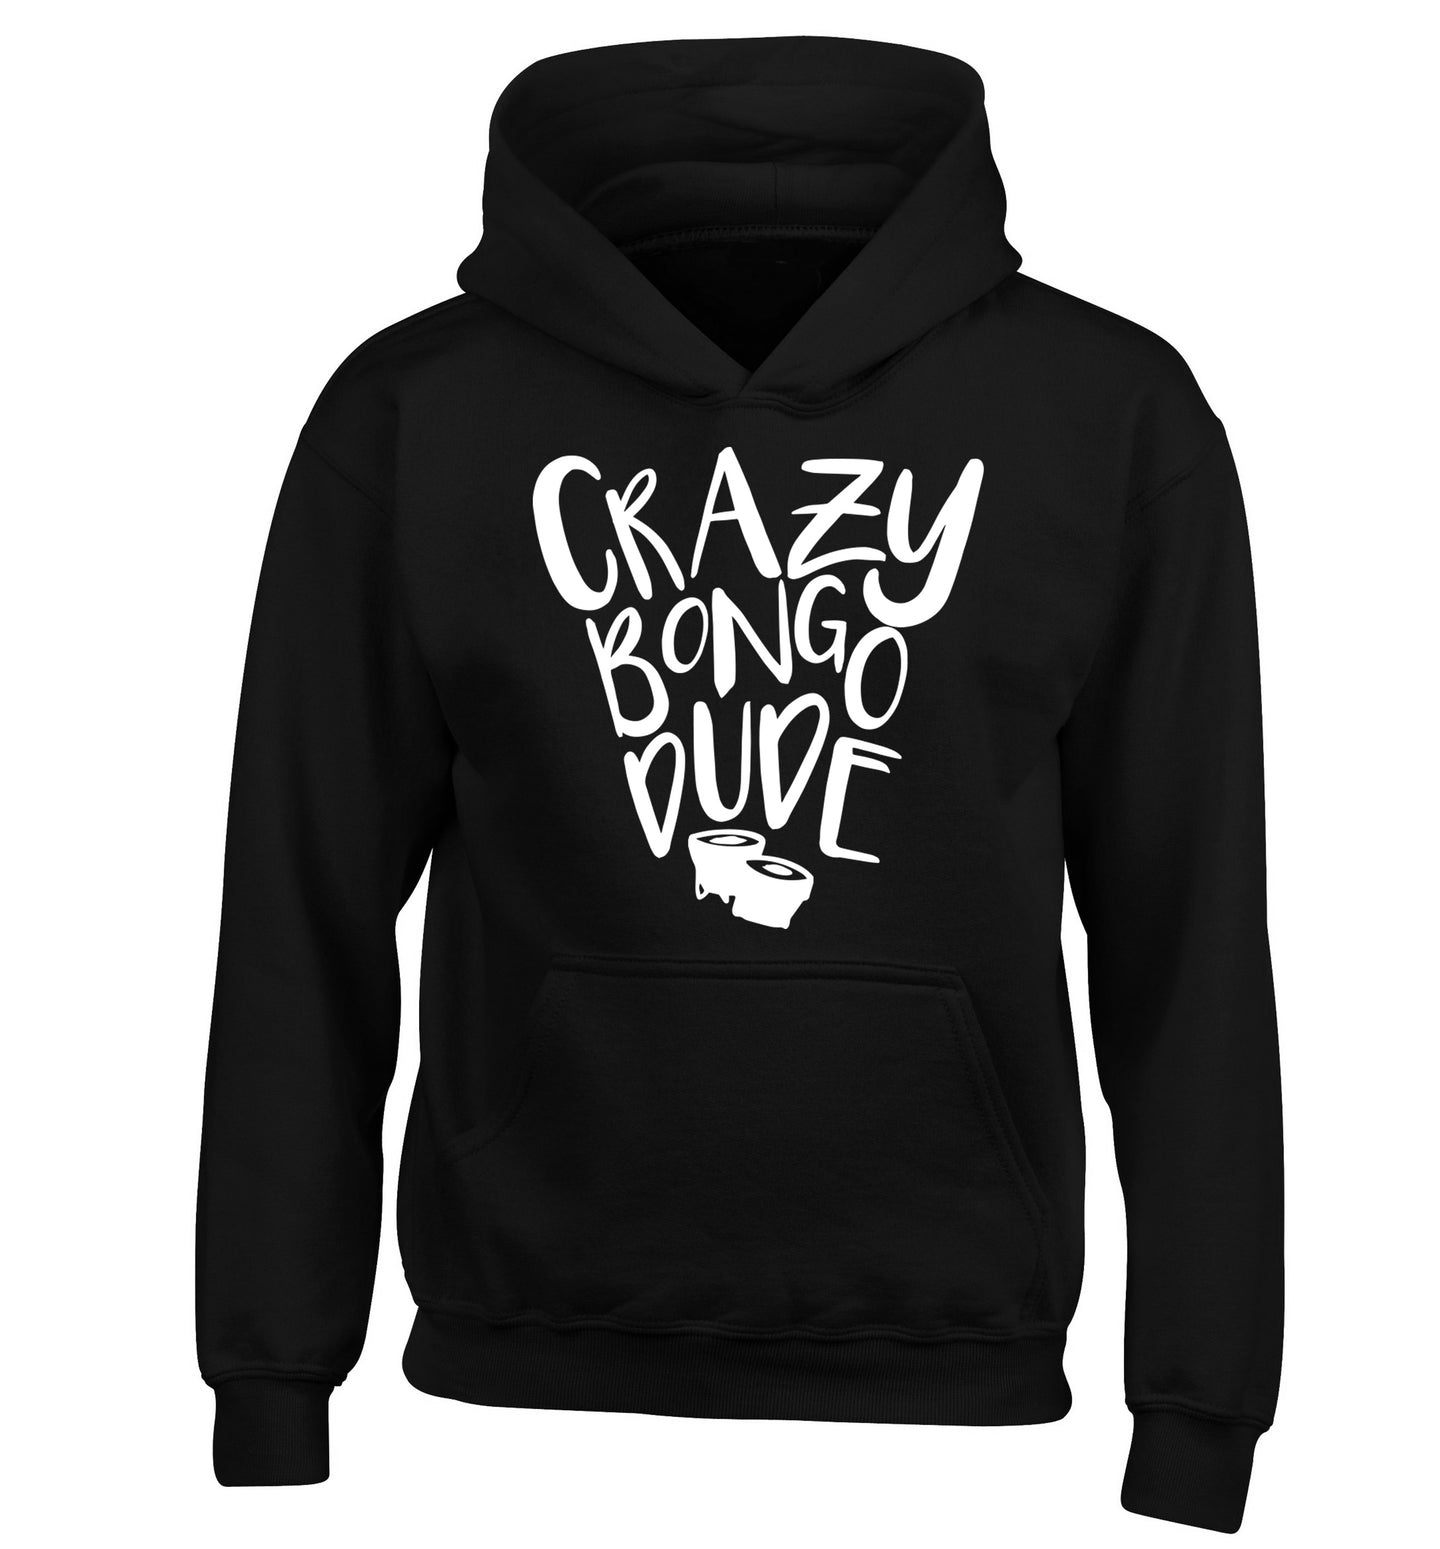 Crazy bongo dude children's black hoodie 12-14 Years